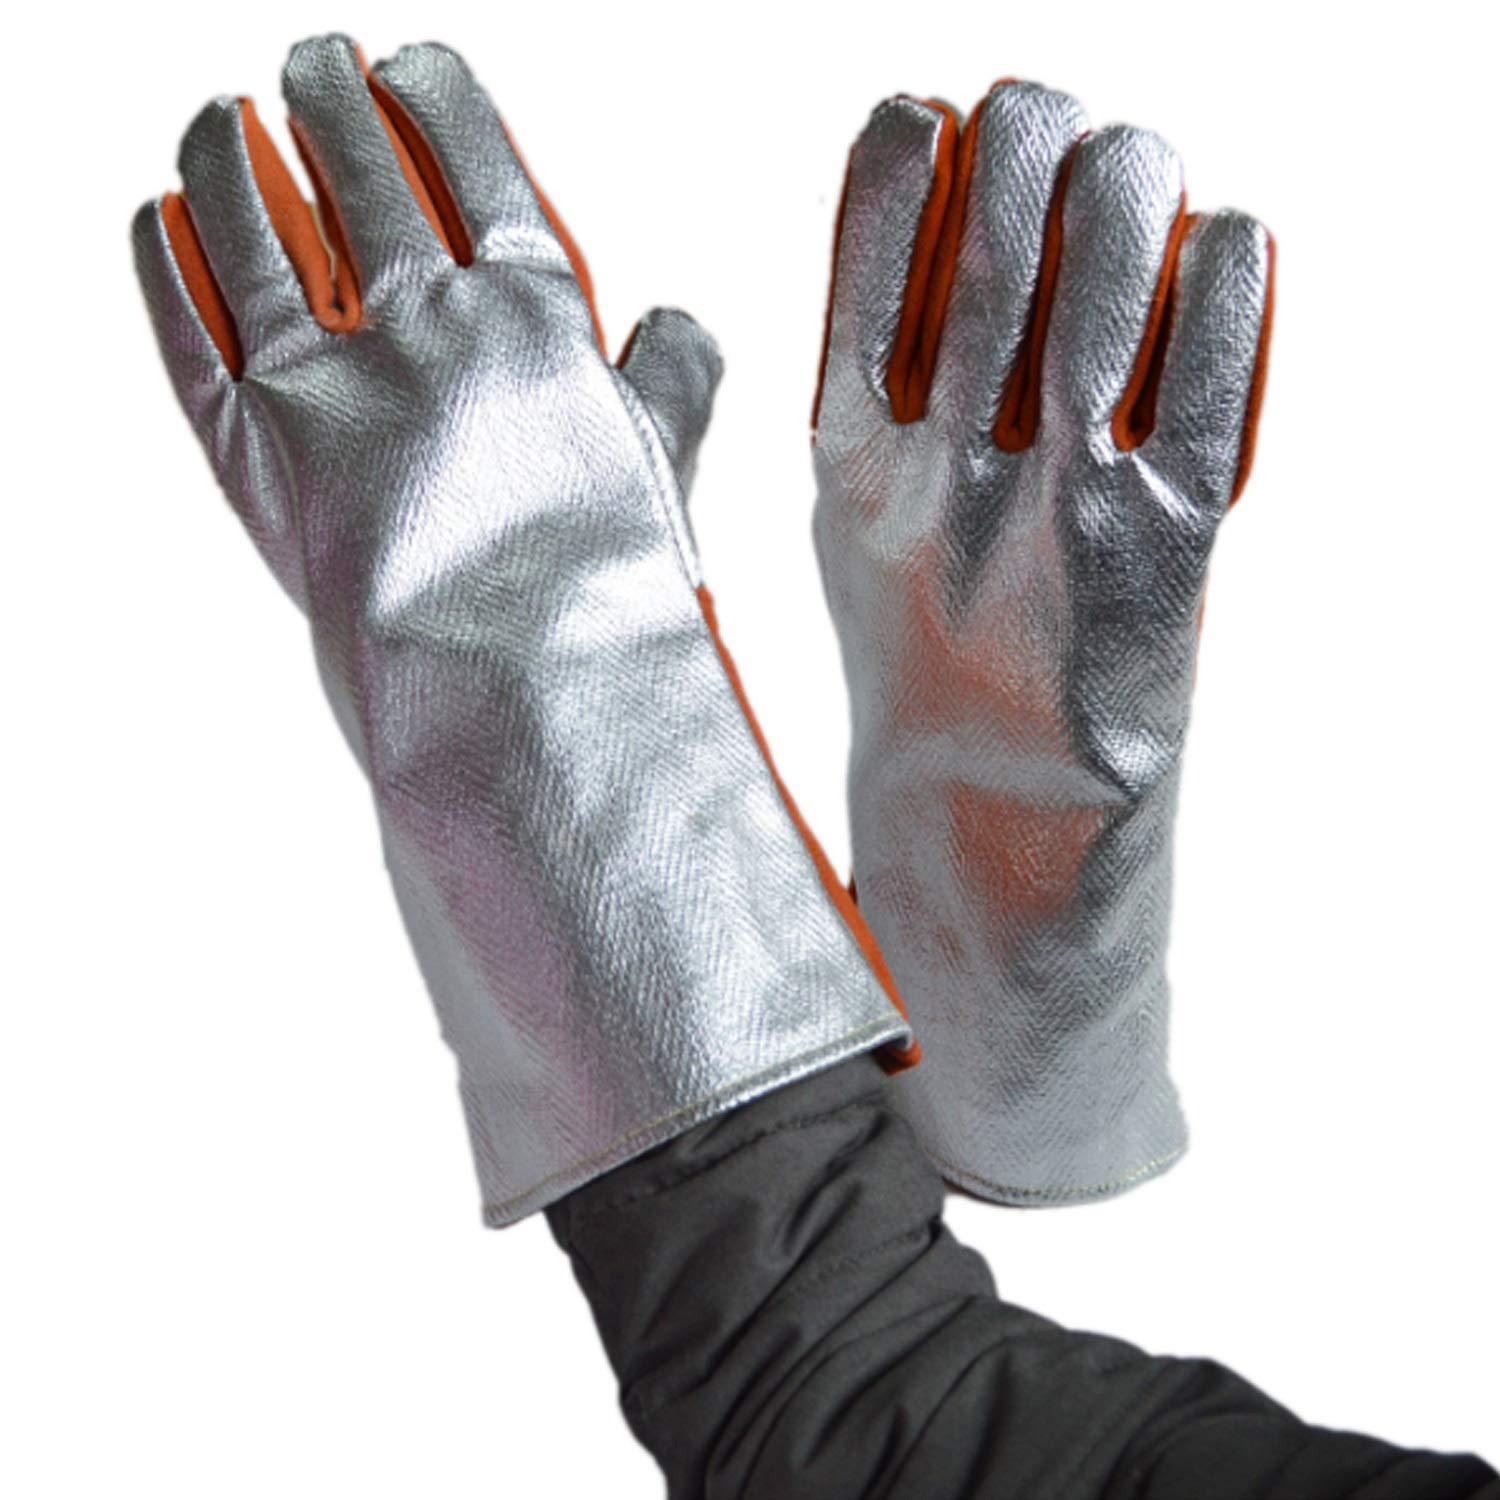 VAXT Conduct 932° Extreme Heat Tolerant Gloves Welding Gloves Aluminum Foil Fiber Kitchen BBQ Gloves Oven Mitts (Color : Orange, Size : M) by VAXT